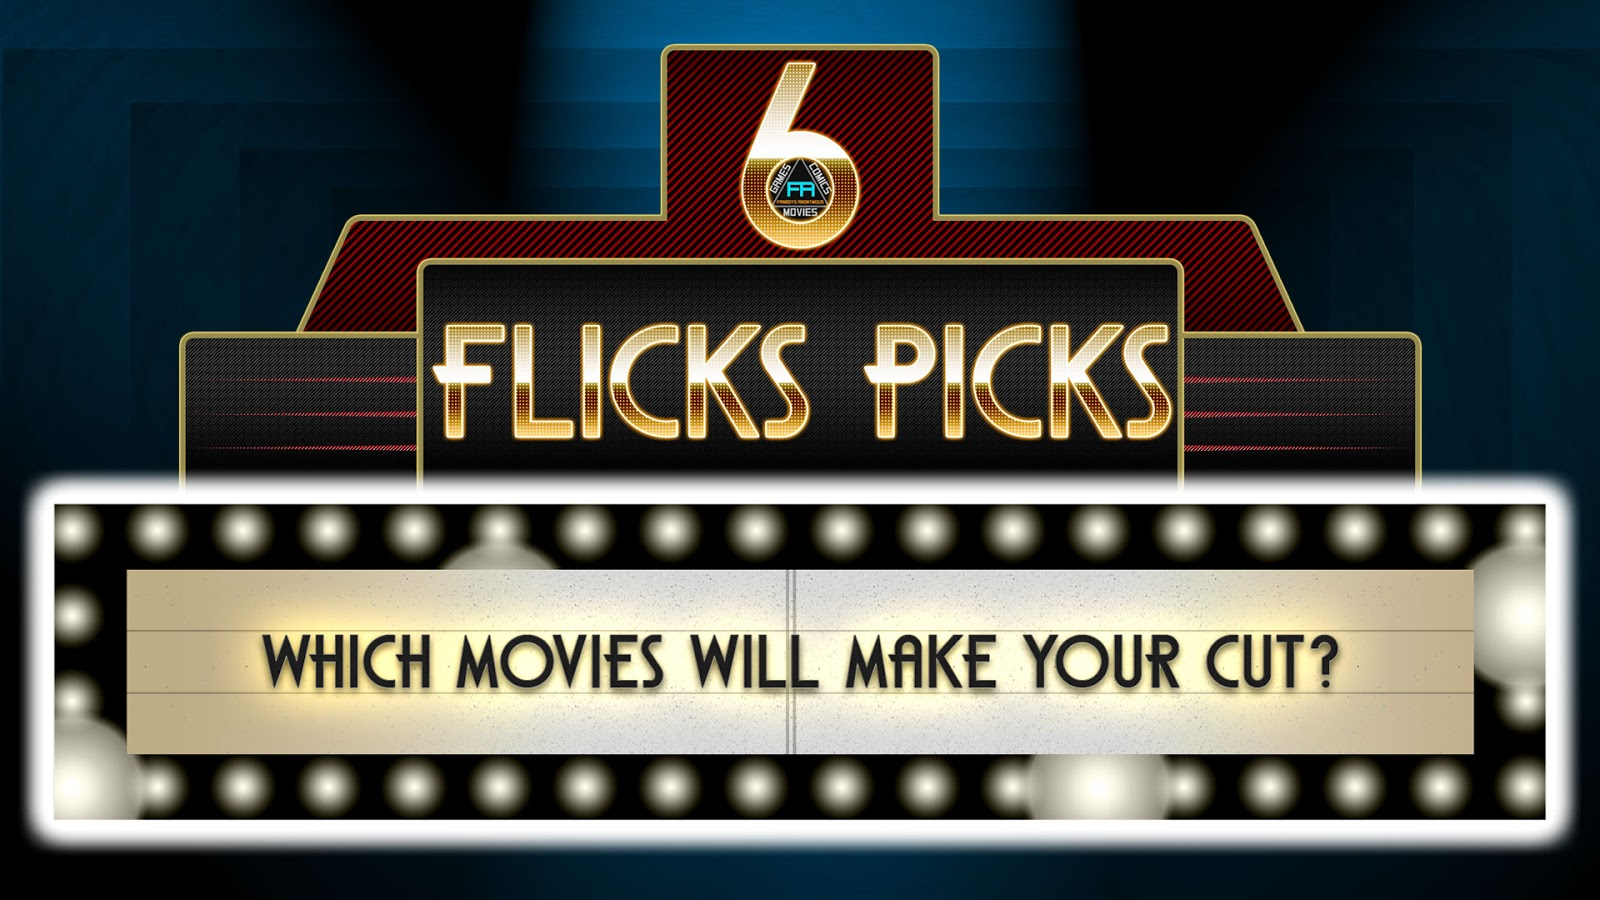 What movies are coming out April 2018 6 Flicks Picks